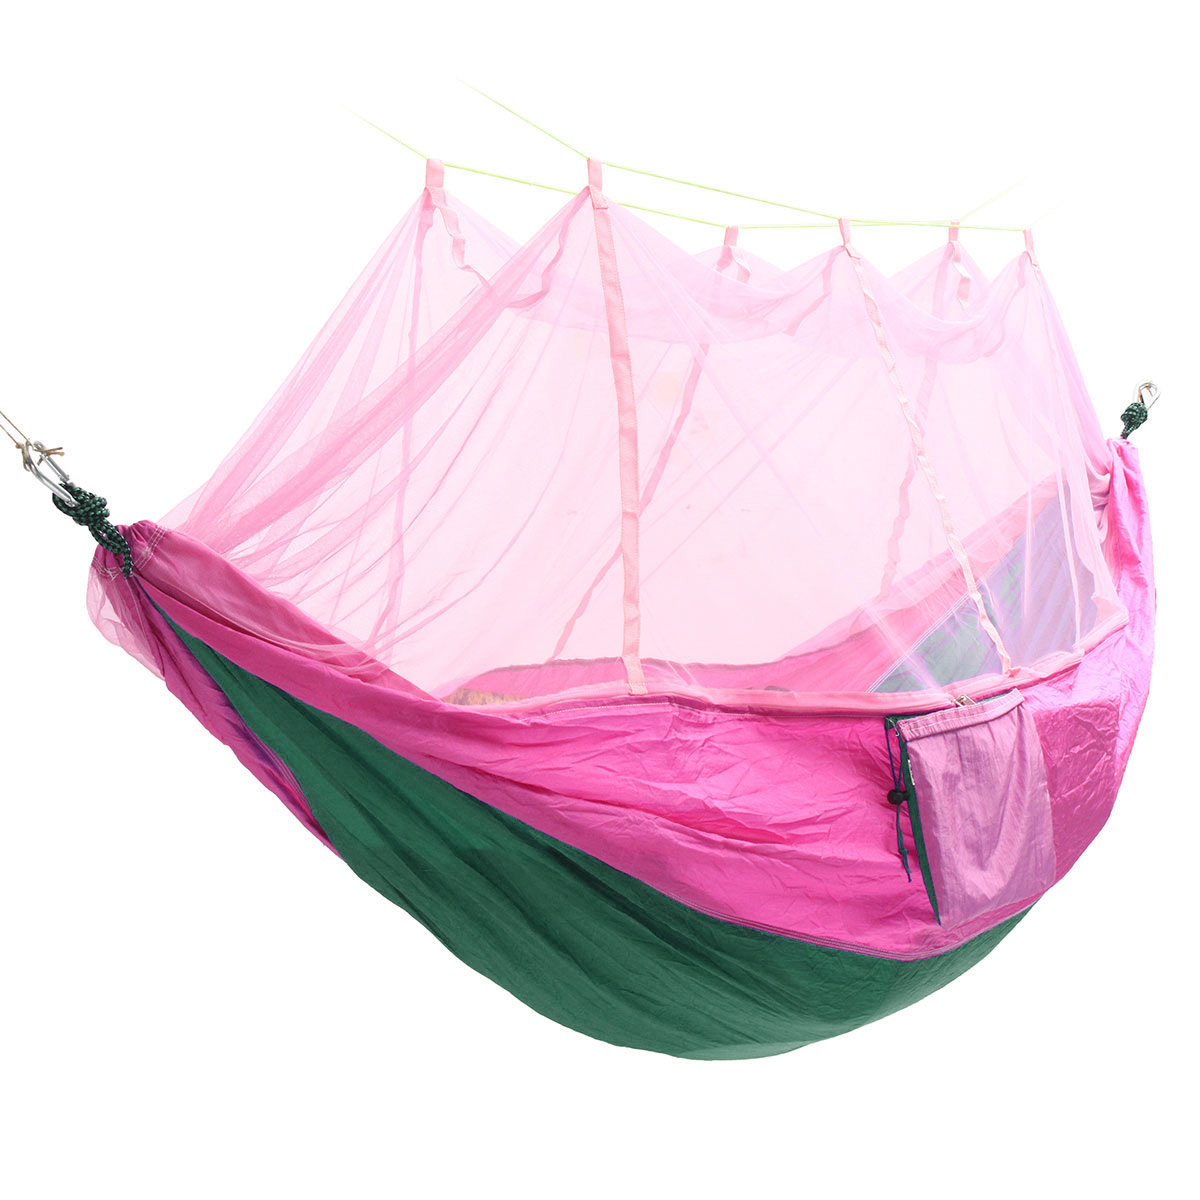 Portable Double Mosquito Net Hammock Swing Bed 2 Person